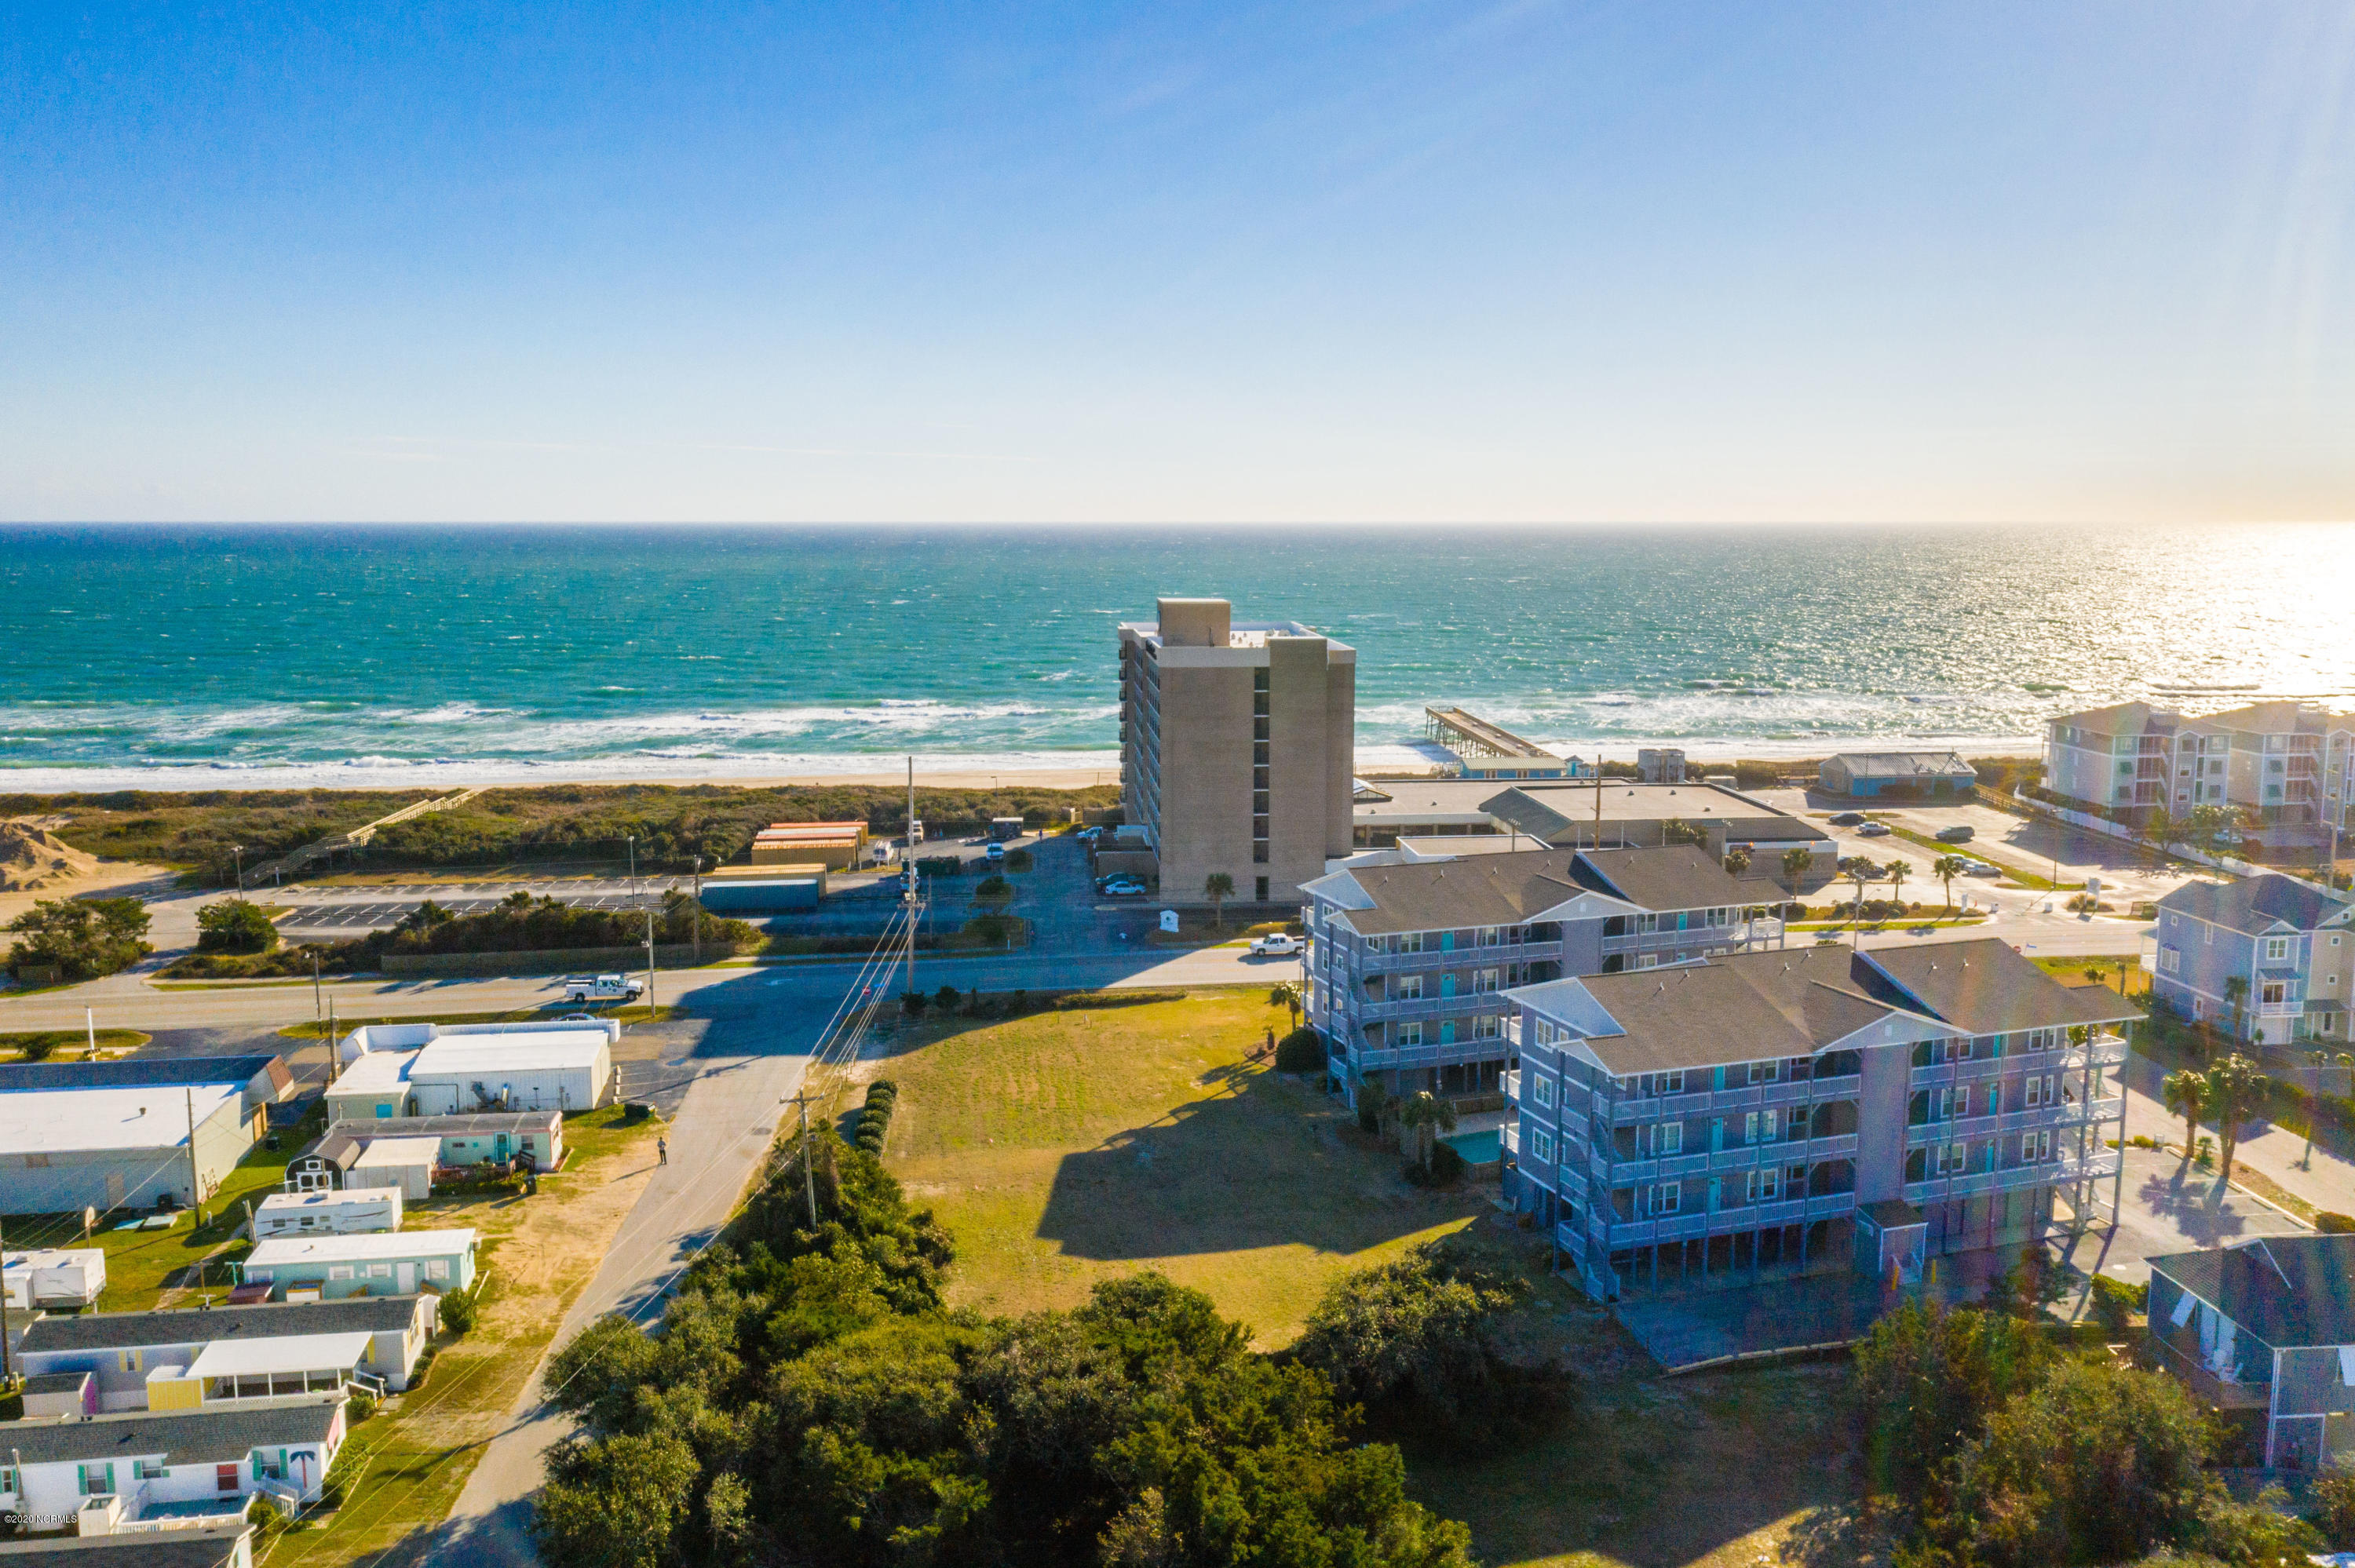 109 Knollwood Drive, Atlantic Beach, North Carolina 28512, 2 Bedrooms Bedrooms, ,2 BathroomsBathrooms,Residential,For Sale,Knollwood,100199775